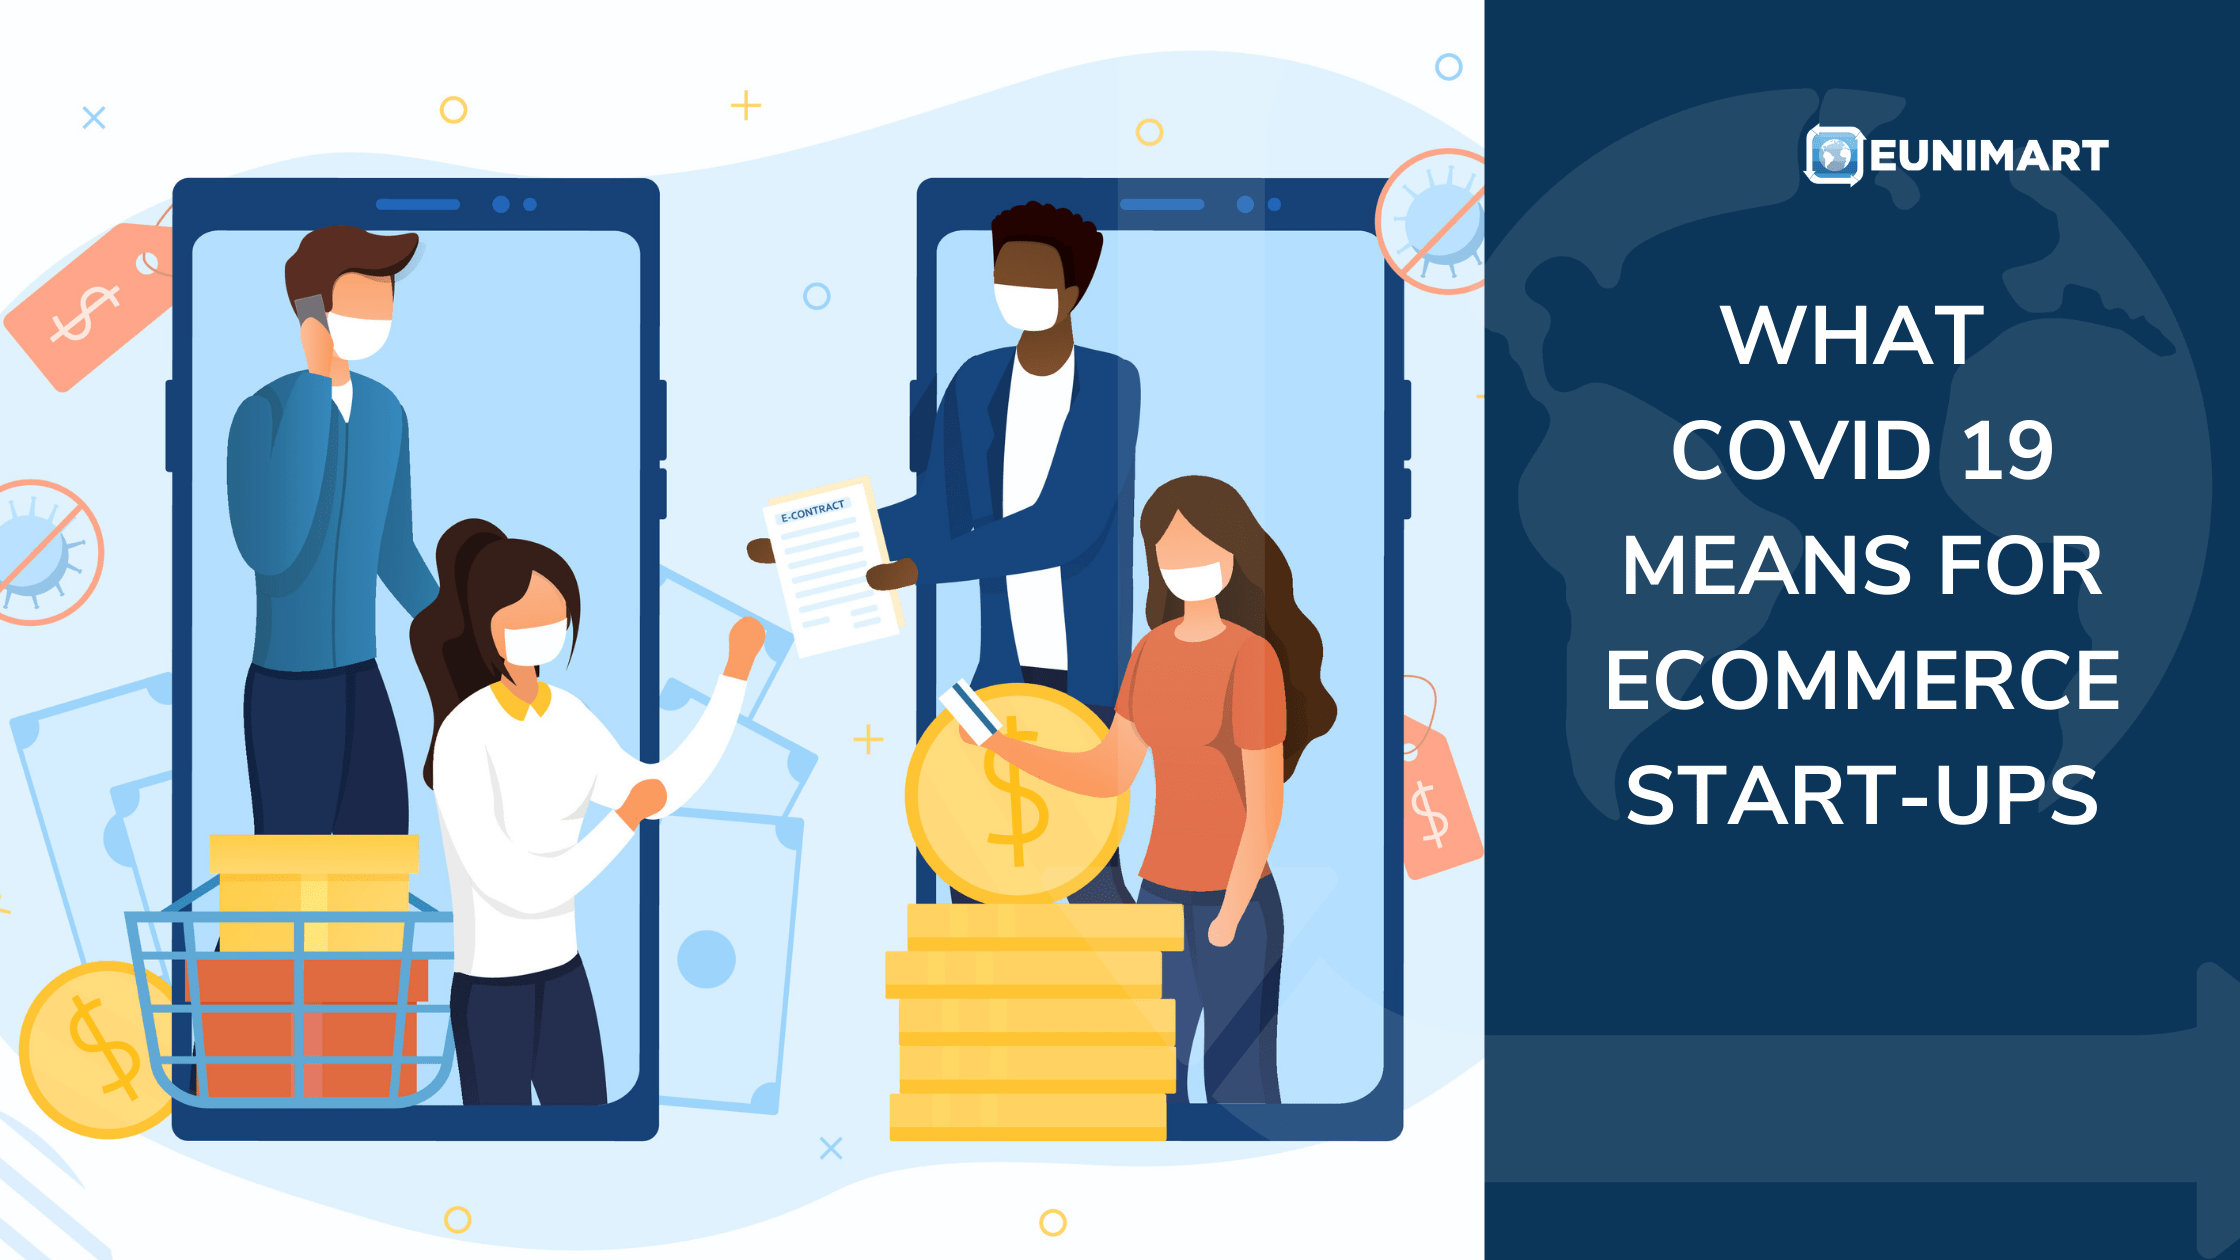 WHAT COVID-19 MEANS FOR ECOMMERCE STARTUPS